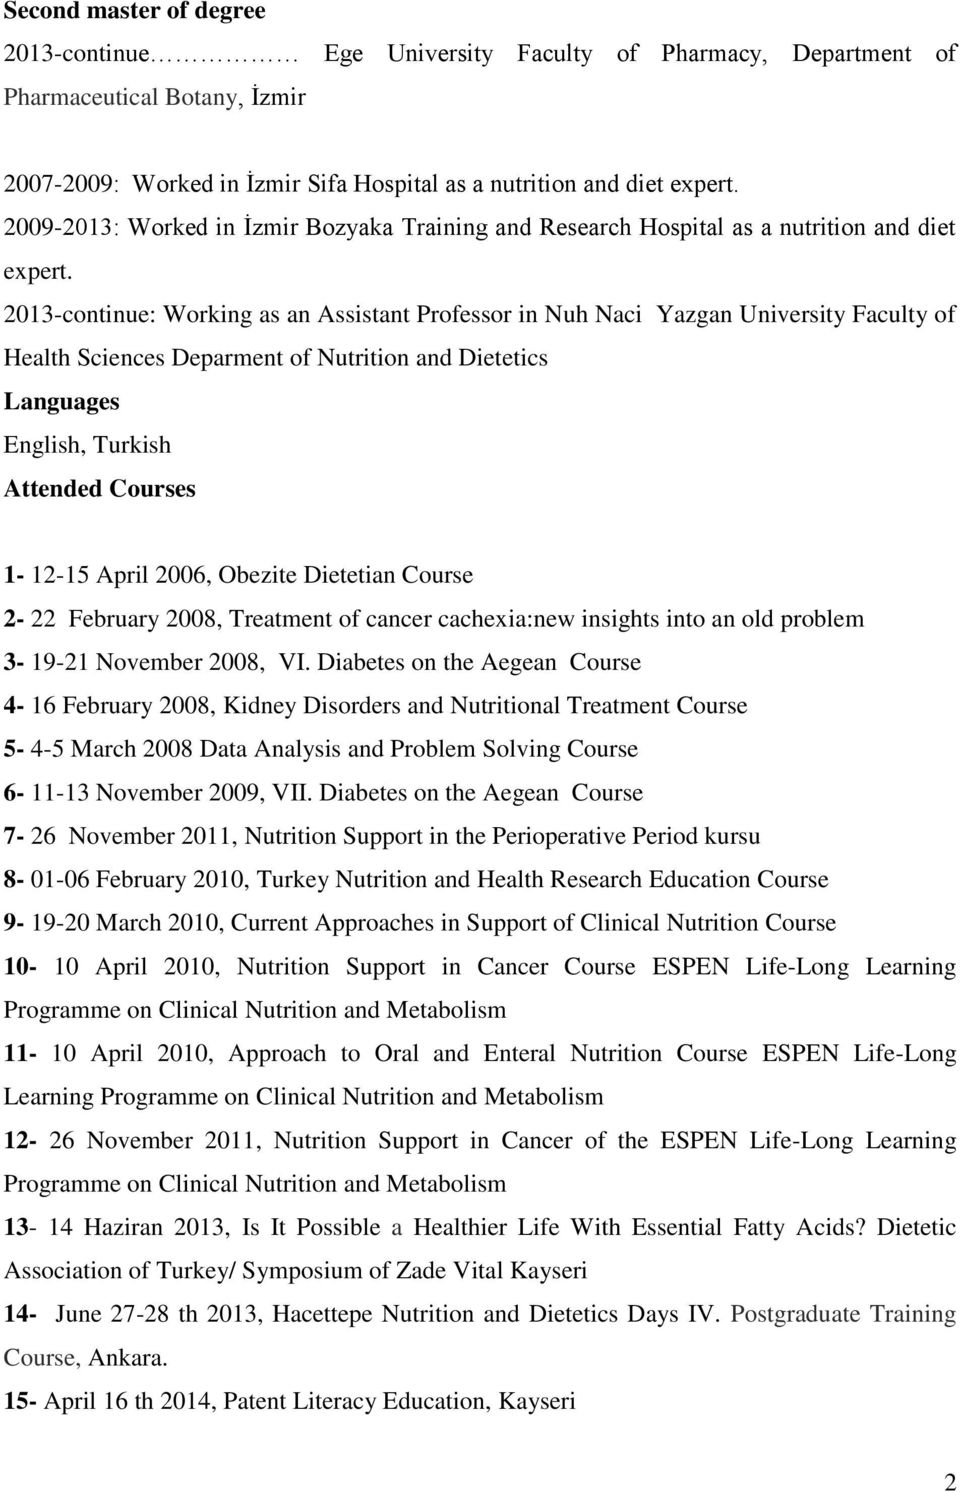 2013-continue: Working as an Assistant Professor in Nuh Naci Yazgan University Faculty of Health Sciences Deparment of Nutrition and Dietetics Languages English, Turkish Attended Courses 1-12-15